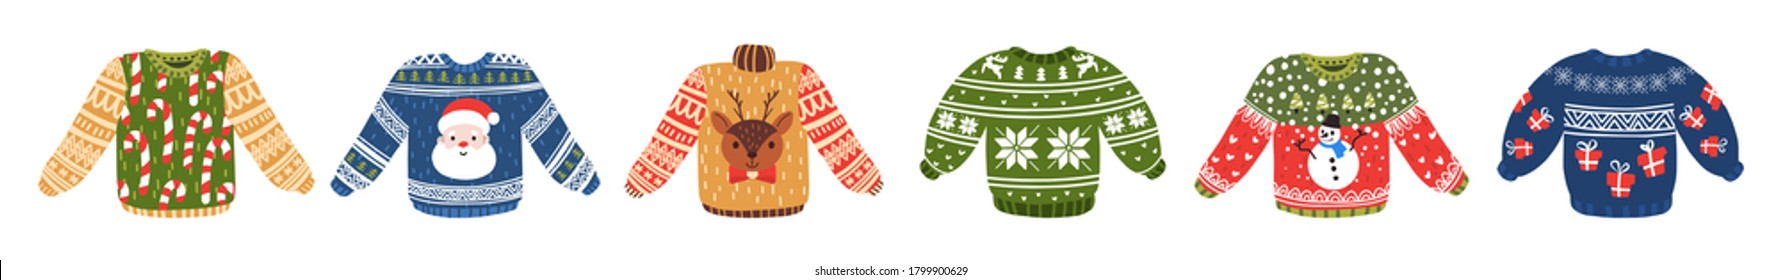 Vector ugly sweaters set for Christmas party. Warm knitted jumpers with snowflake, snowman, Santa, candy cane and deer ornament. Isolated